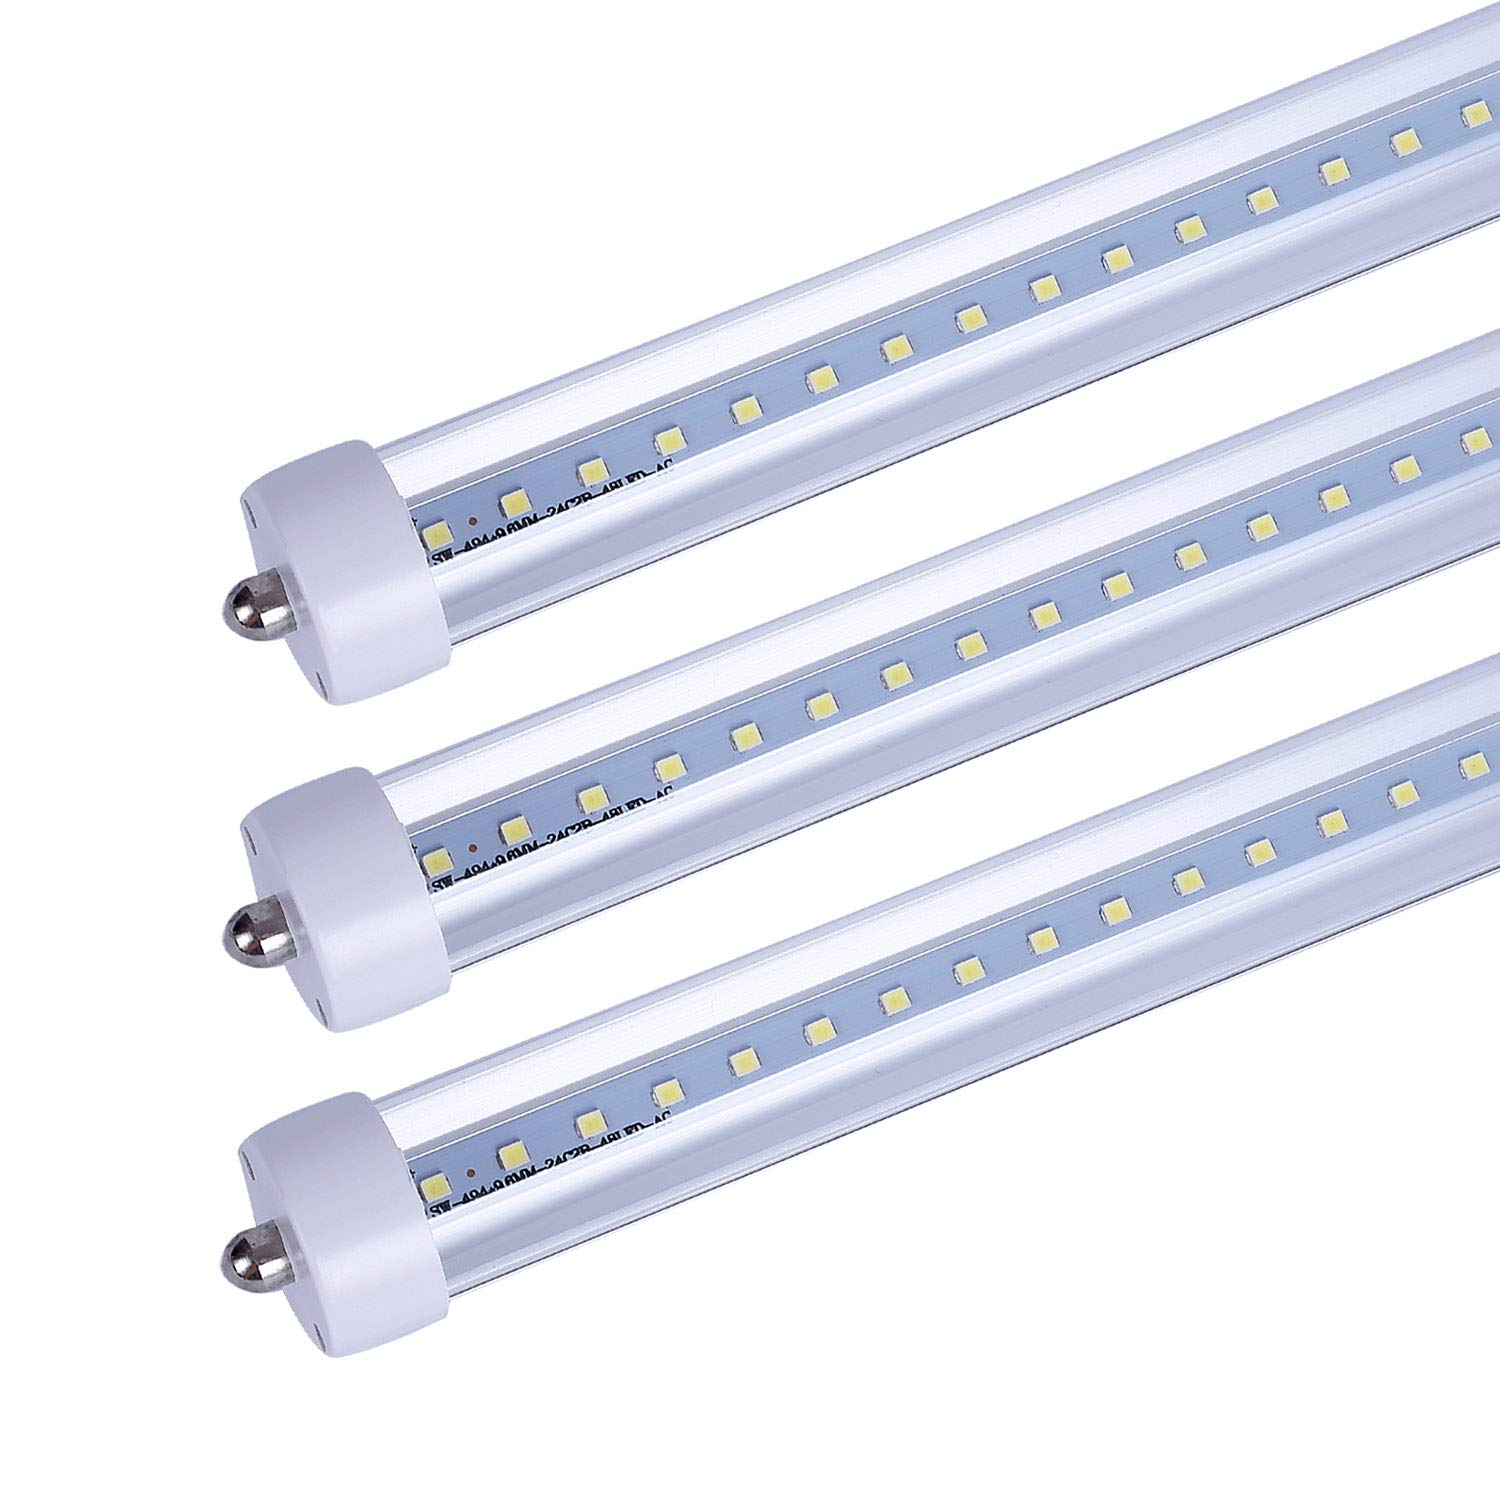 (US Stock) CNSUNWAY LIGHTING 8FT LED Tube Lights, 96'' Single Pin T8 LED Bulbs,45 Watts,4800Lumens,Clean Cover, 6000K Cool White,Replace Fluorescent Bulb(25 Pieces)